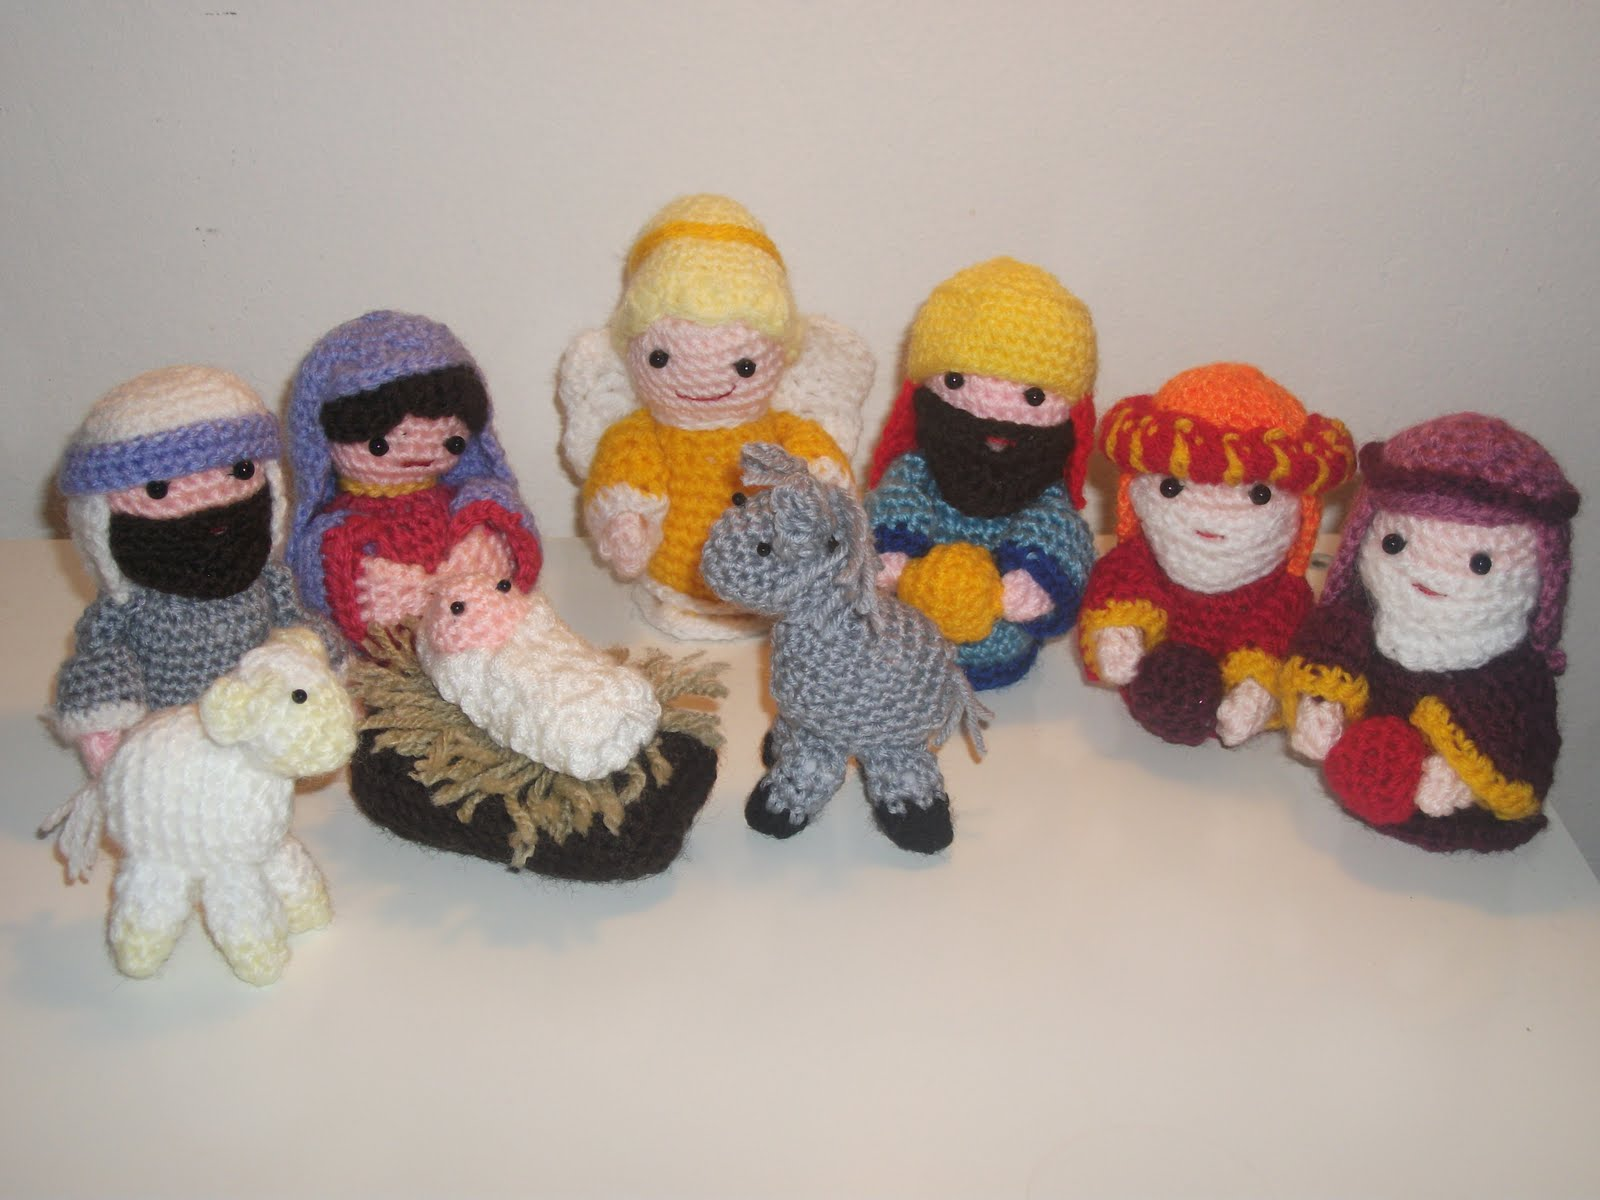 Free Crochet Patterns Nativity Scene : Crochet Nativity Scene Free Pattern Search Results ...